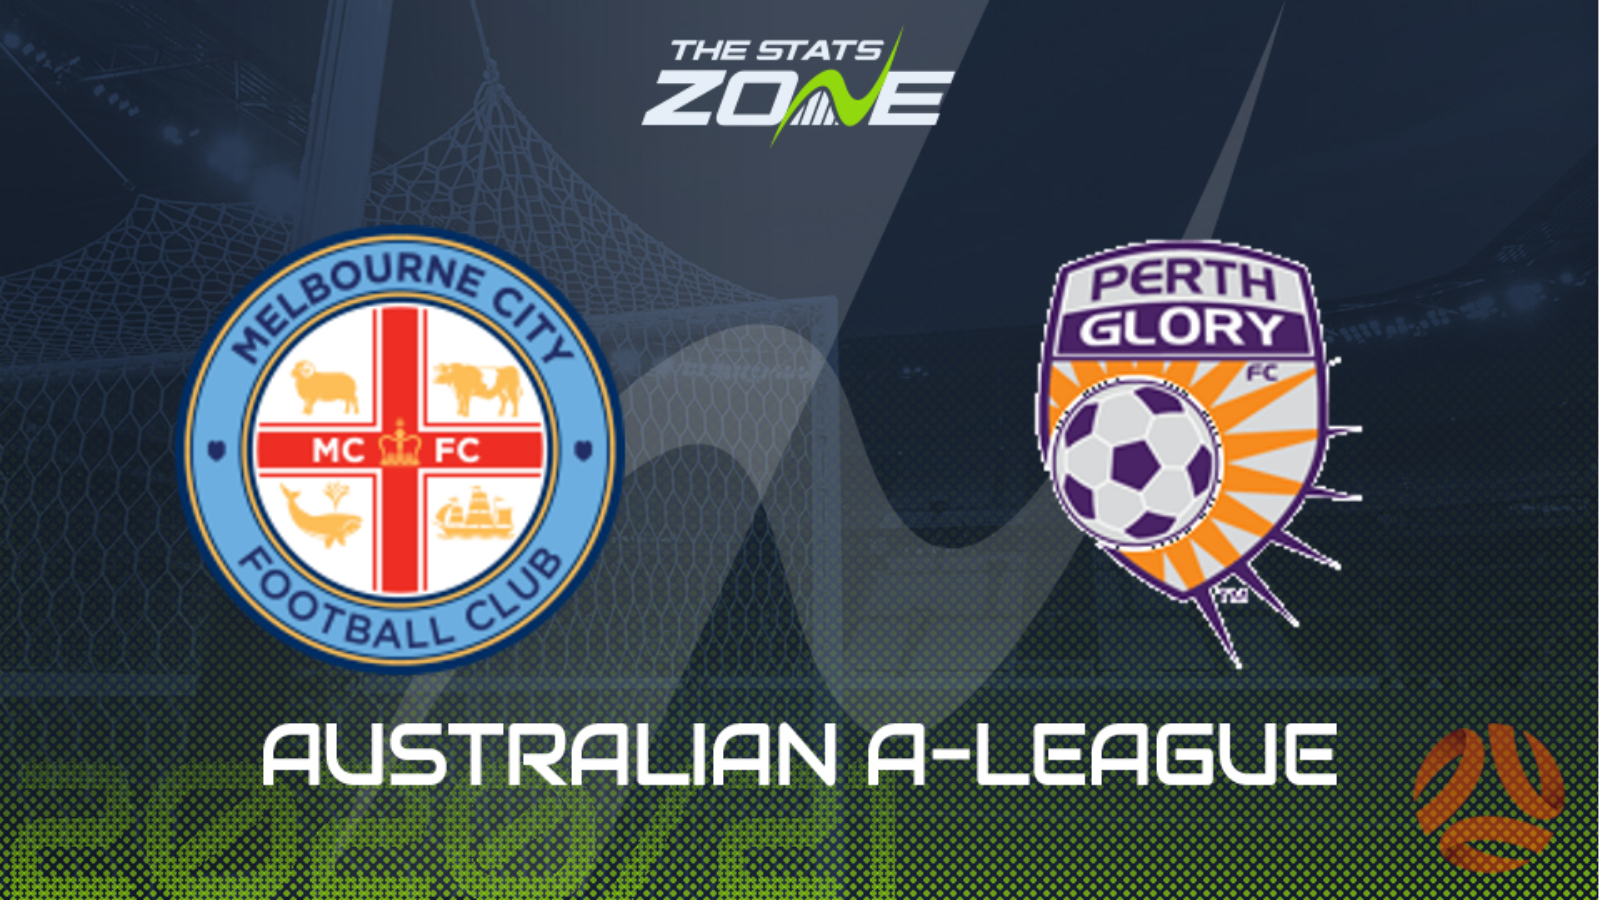 Perth glory vs melbourne city bettingexpert football betting odds on brexit